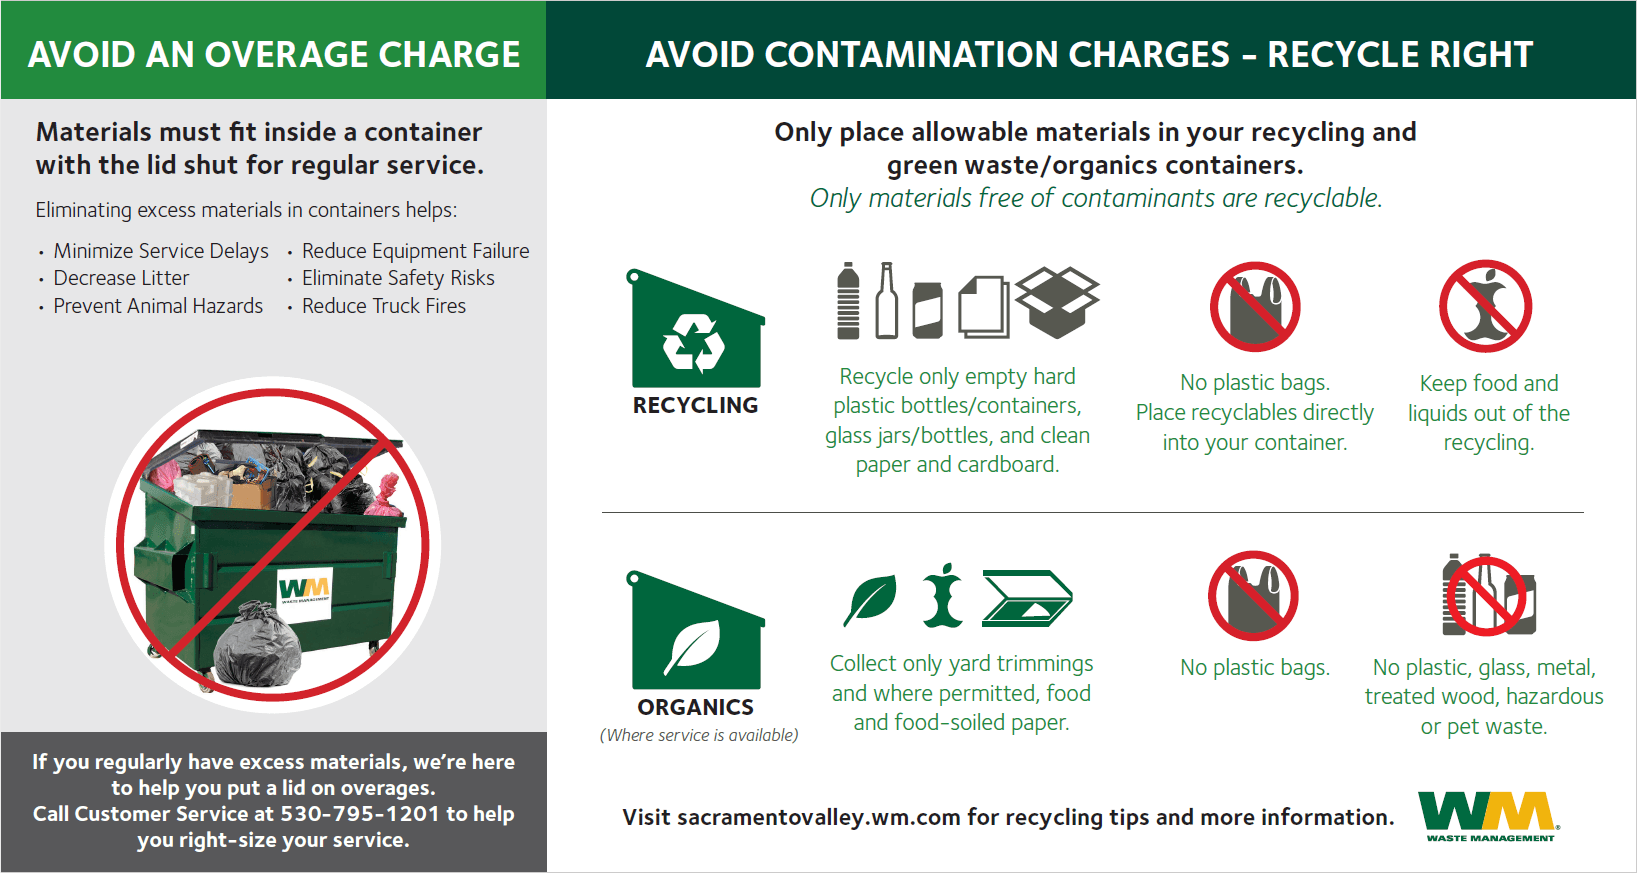 Recycle Right, Avoid Contamination Charges